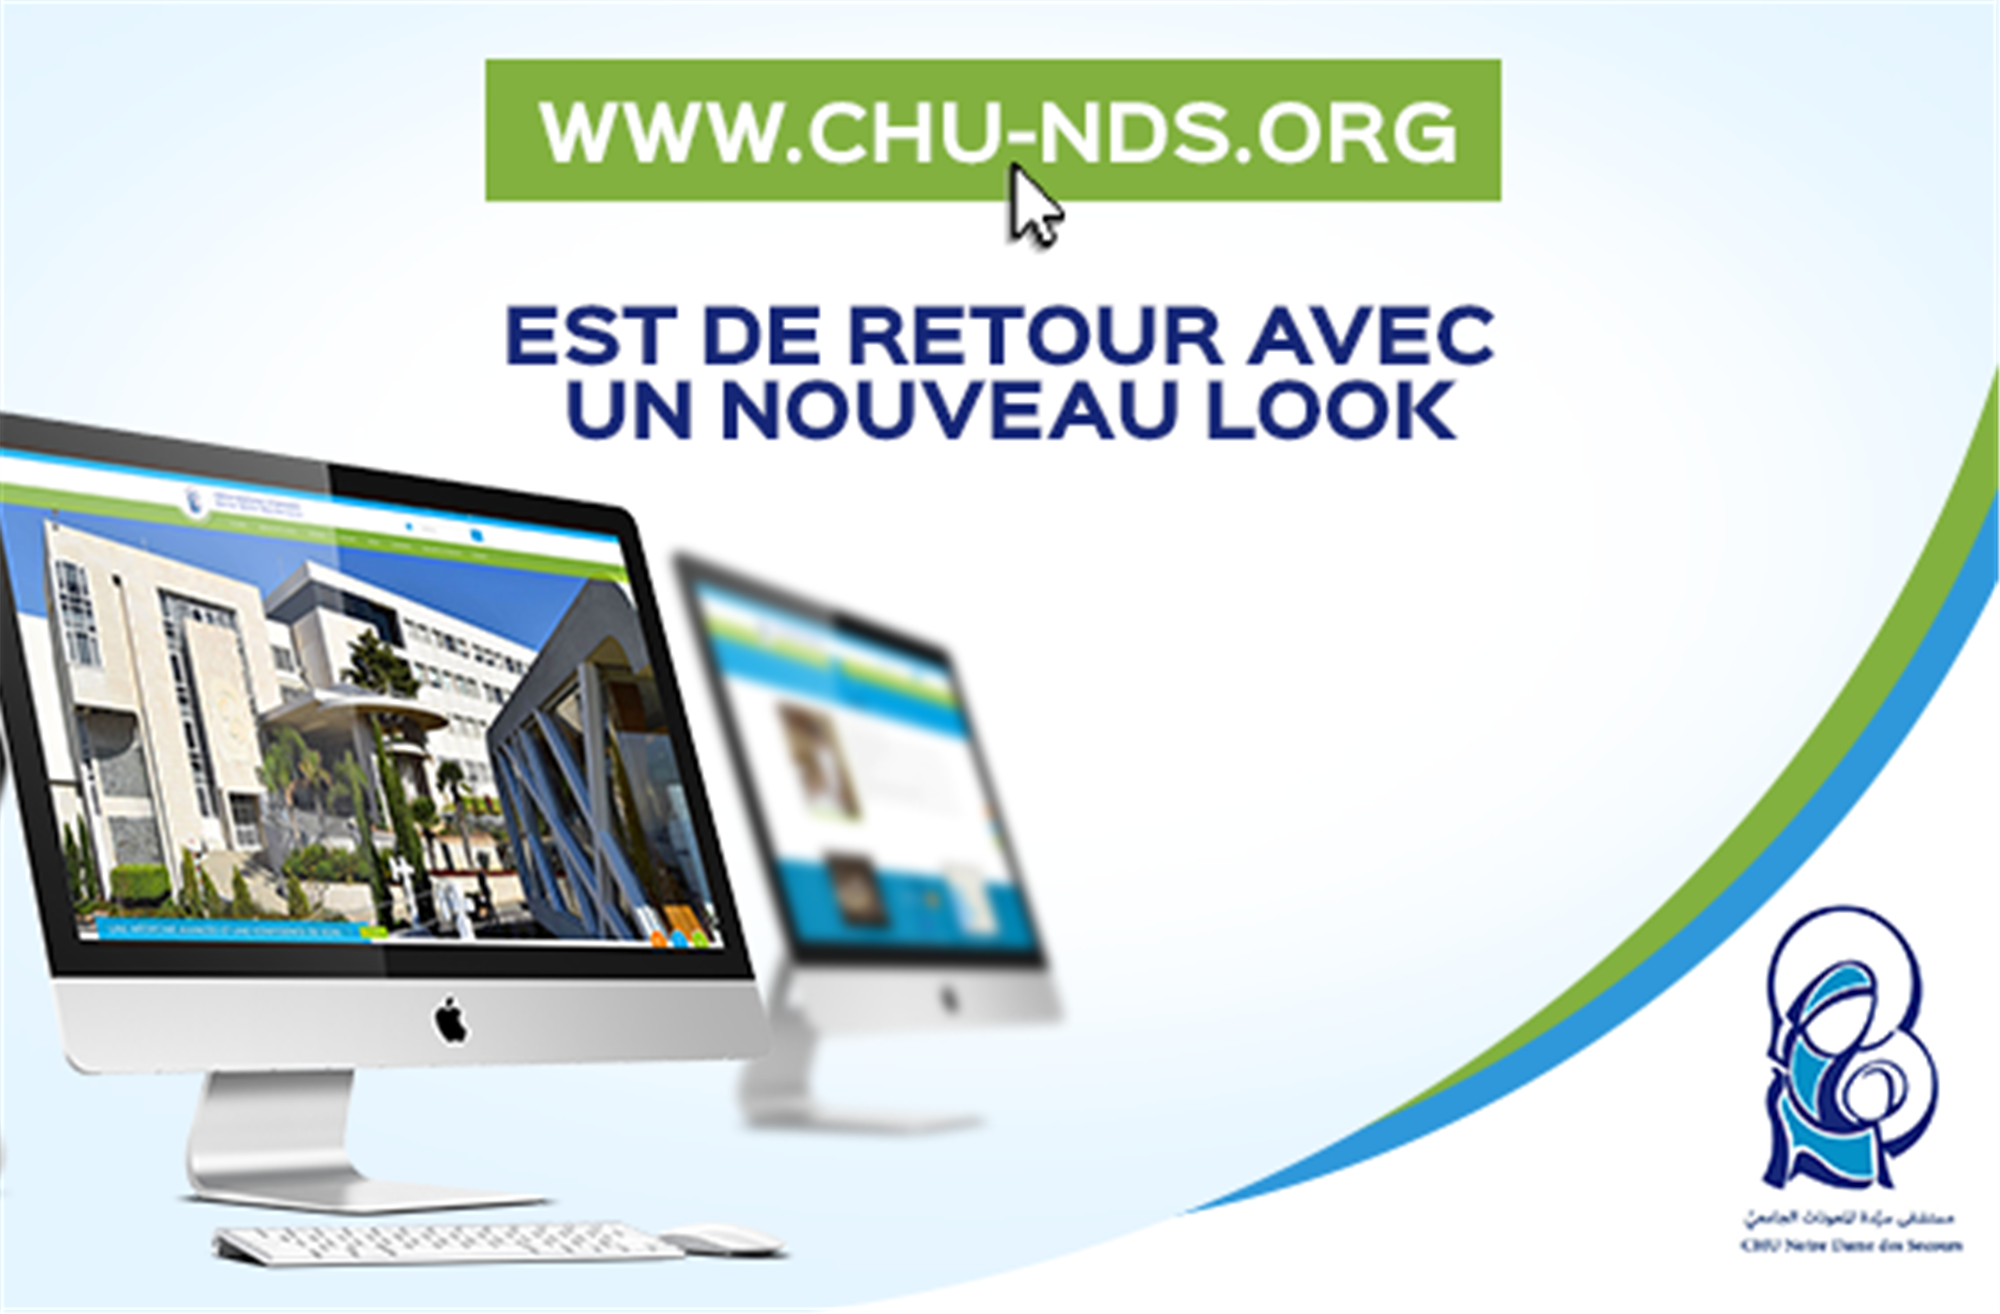 www.chu-nds is back with a new look